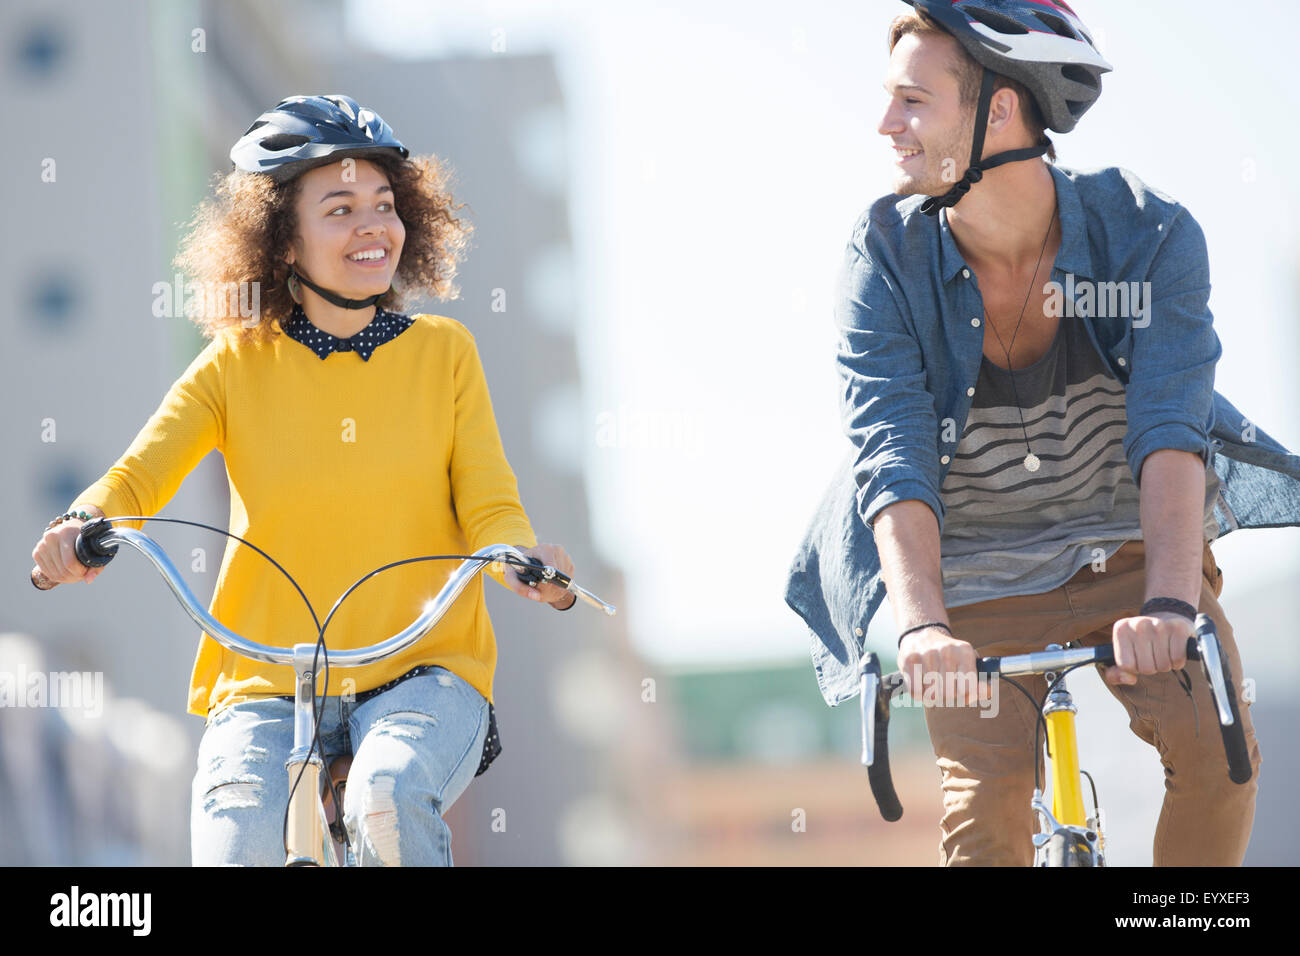 Young couple with helmets riding bicycles in city Stock Photo